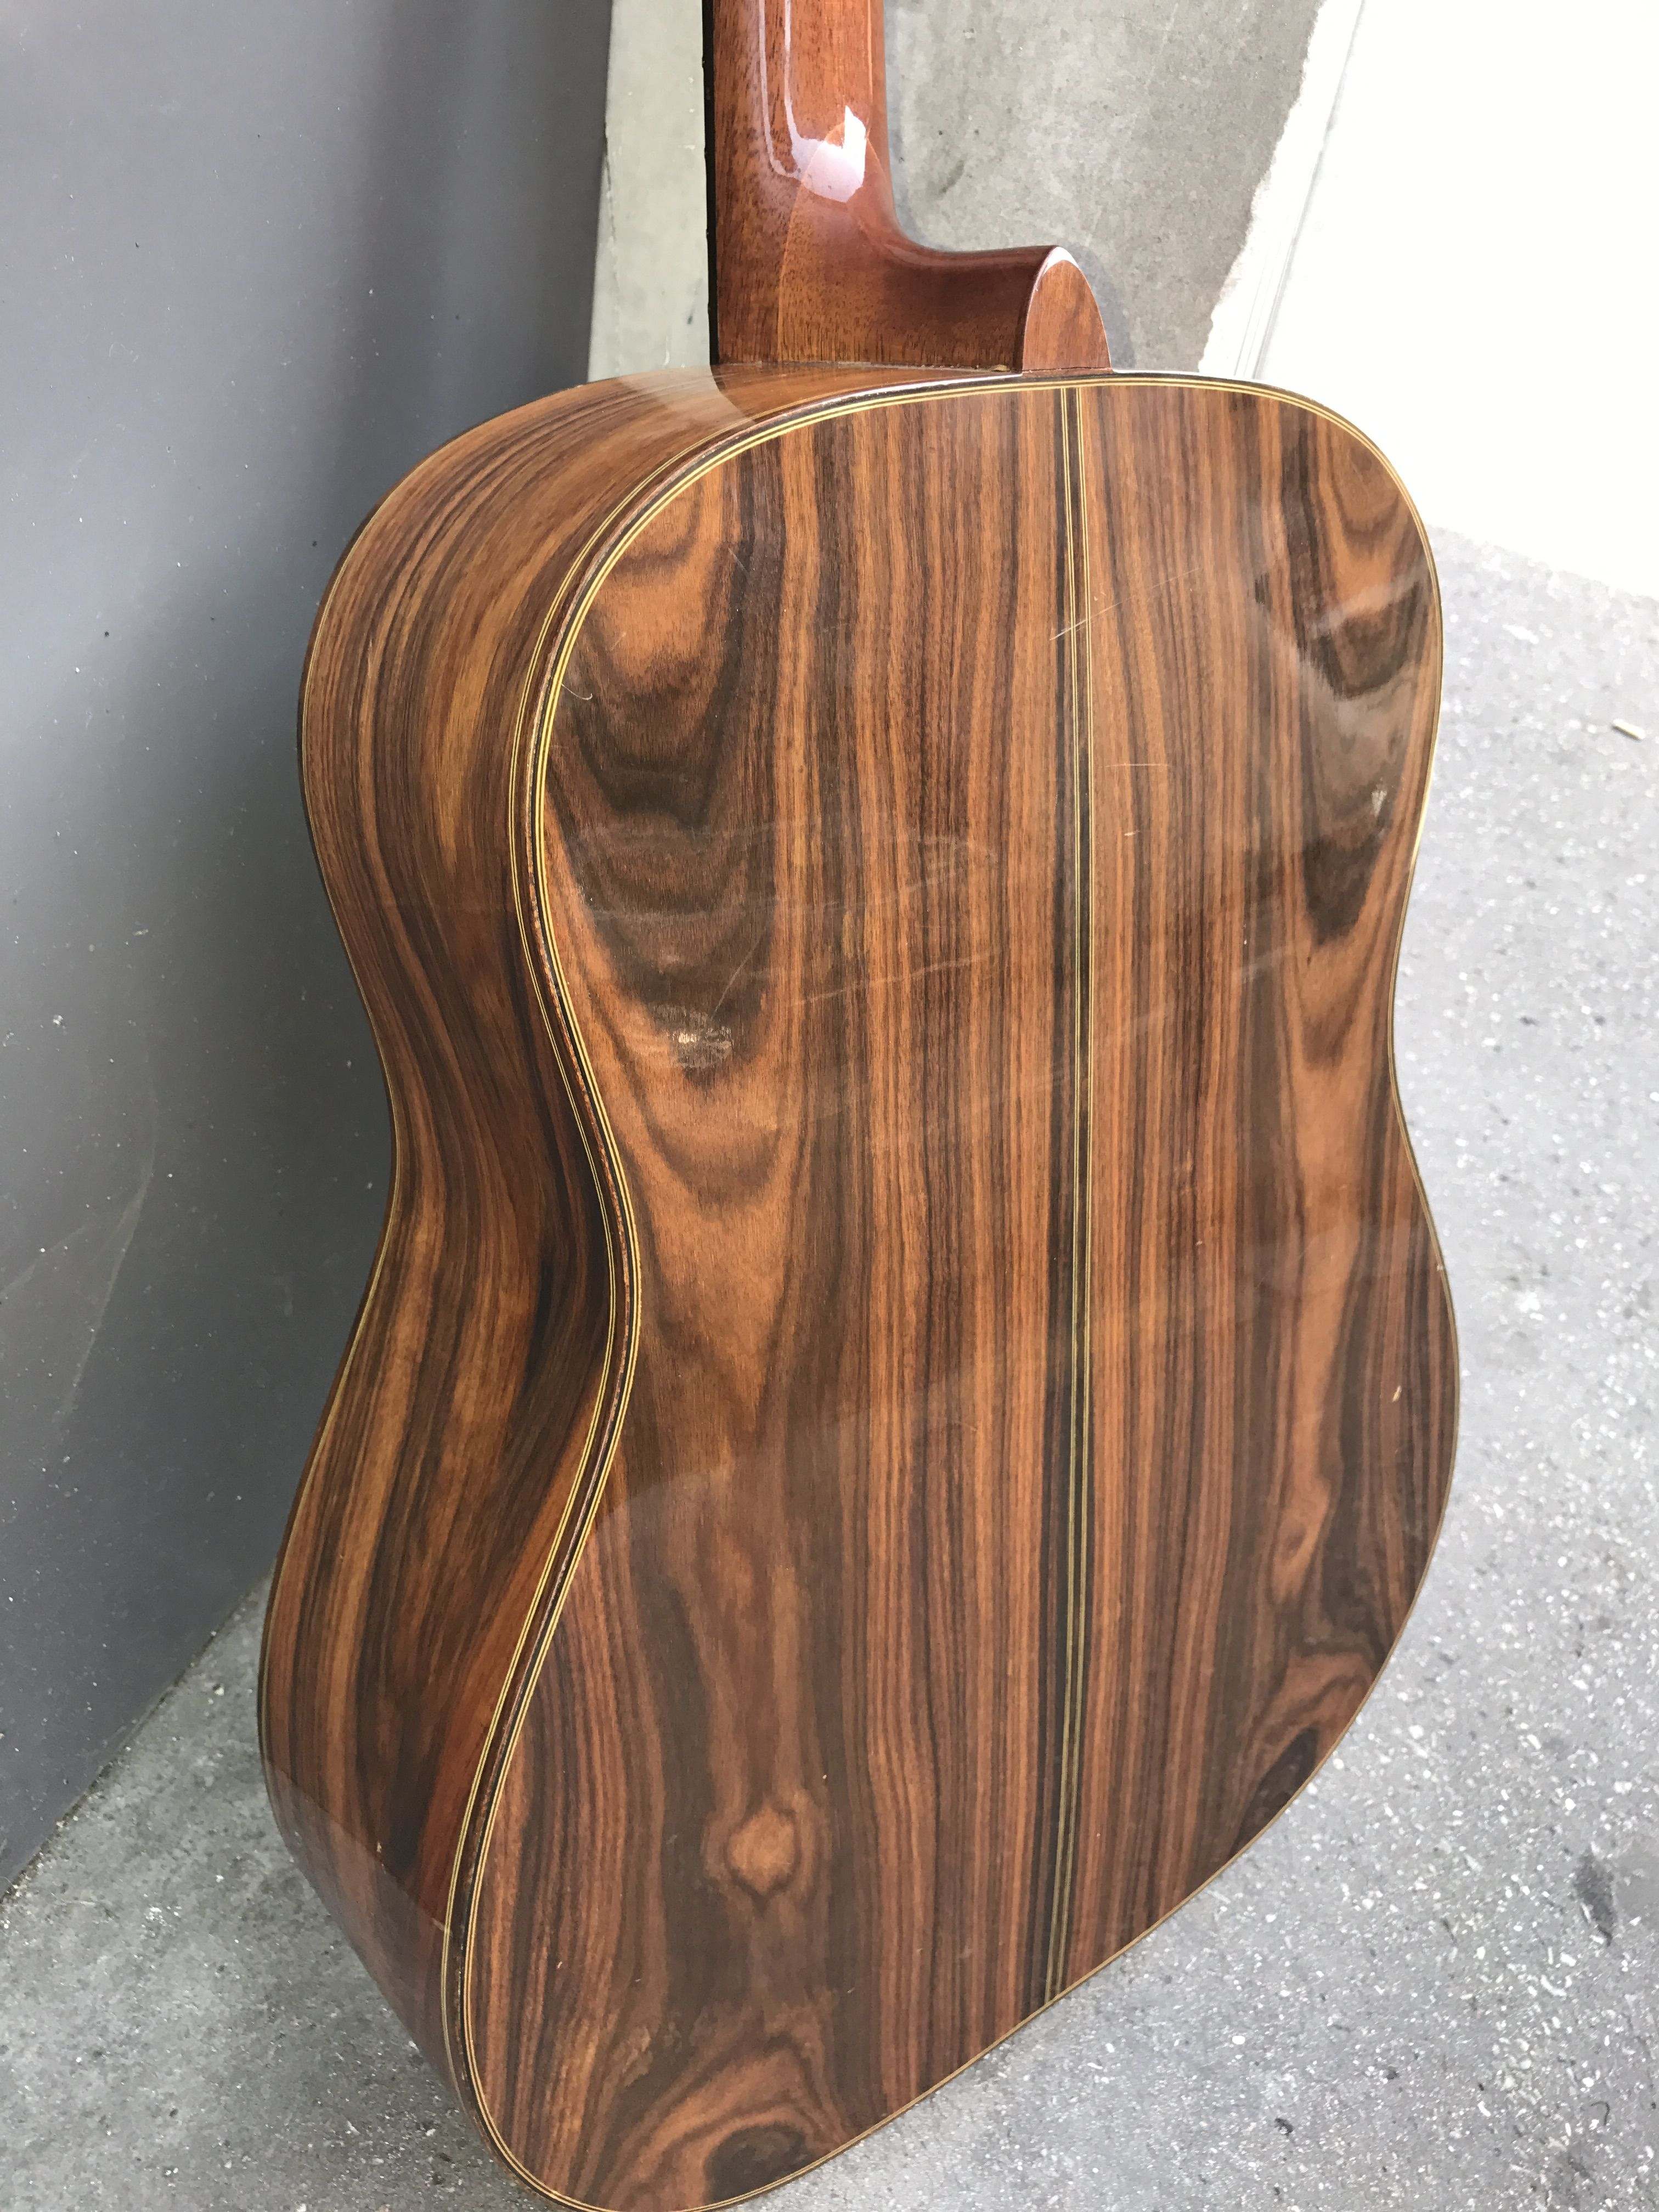 The Beautiful Brazilian Rosewood Back And Sides Of This Giannini Dreadnought Acoustic Available Now Call Simon 07788 708002